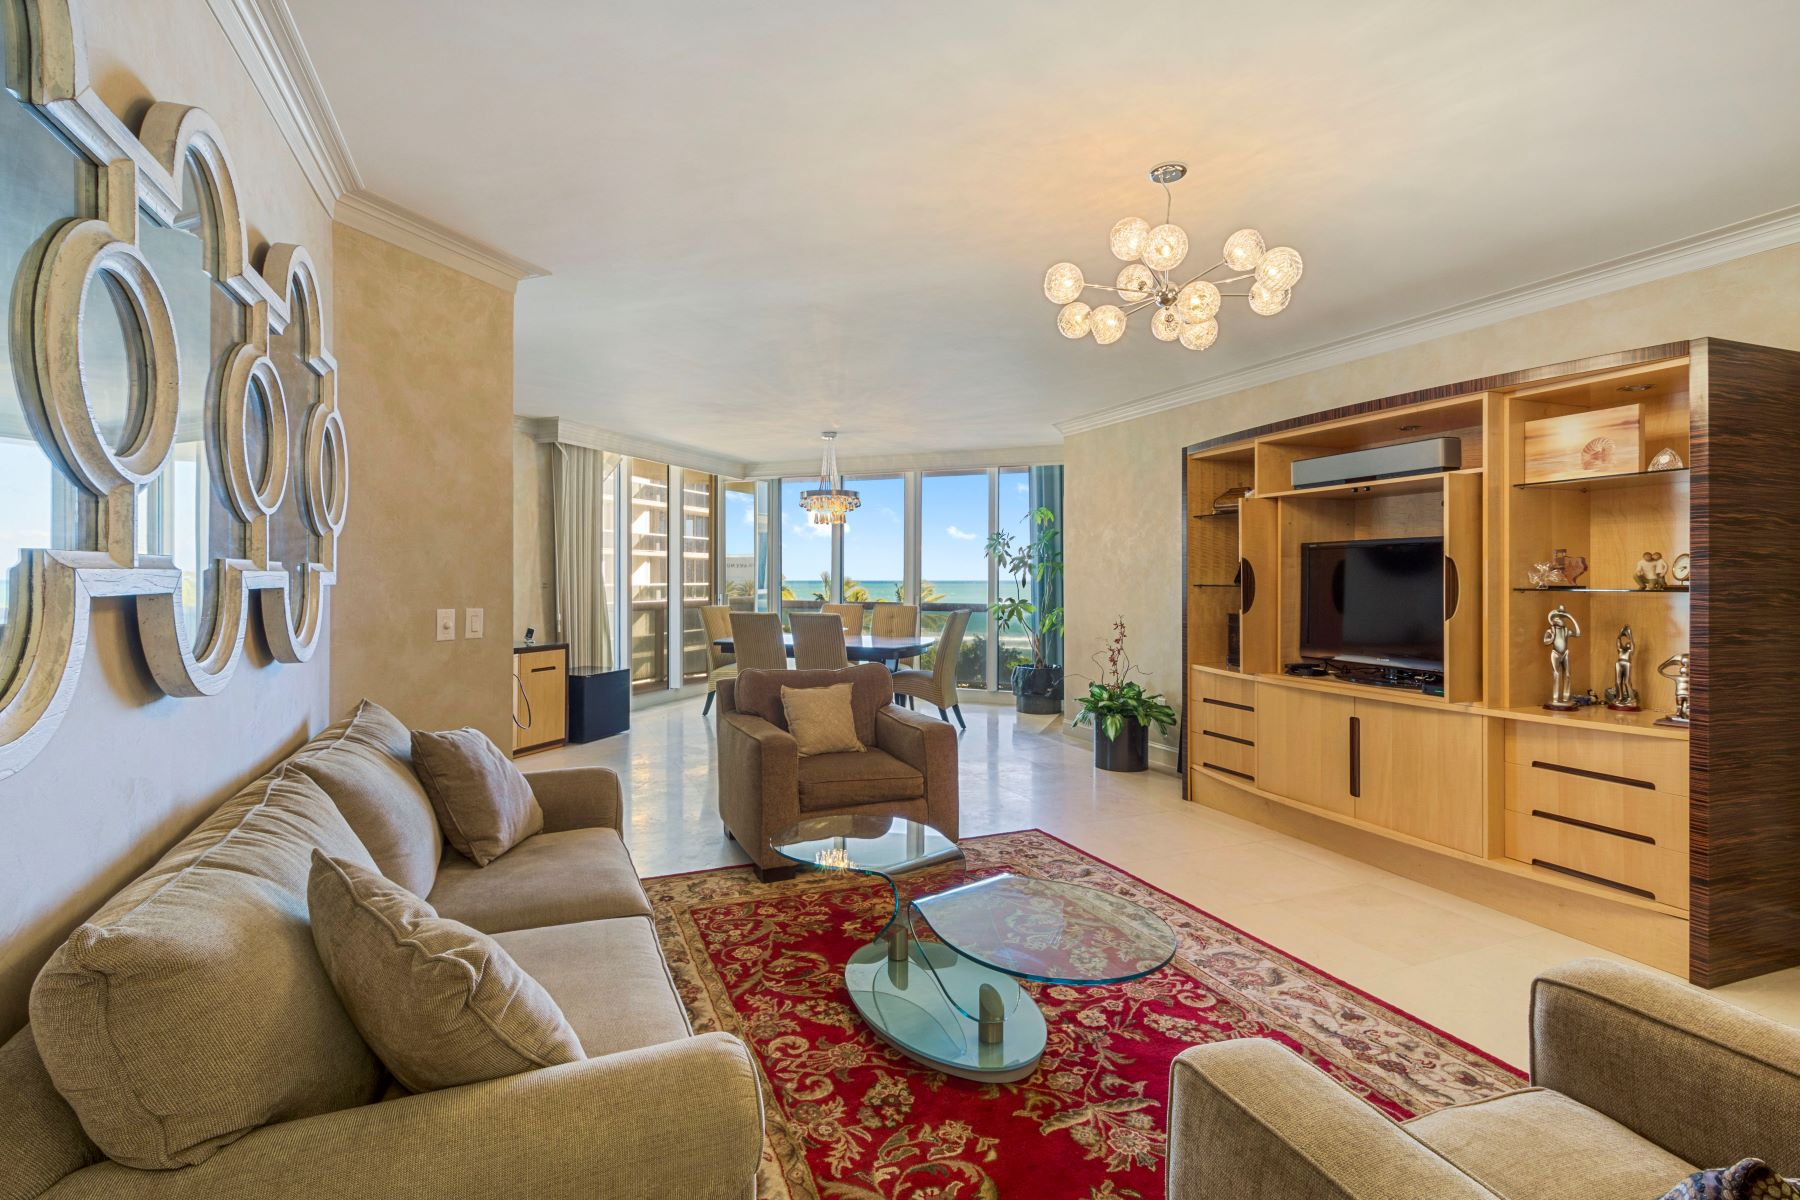 Condominium for Sale at 9559 Collins Ave #S4-E 9559 Collins Ave S4-E Surfside, Florida 33154 United States